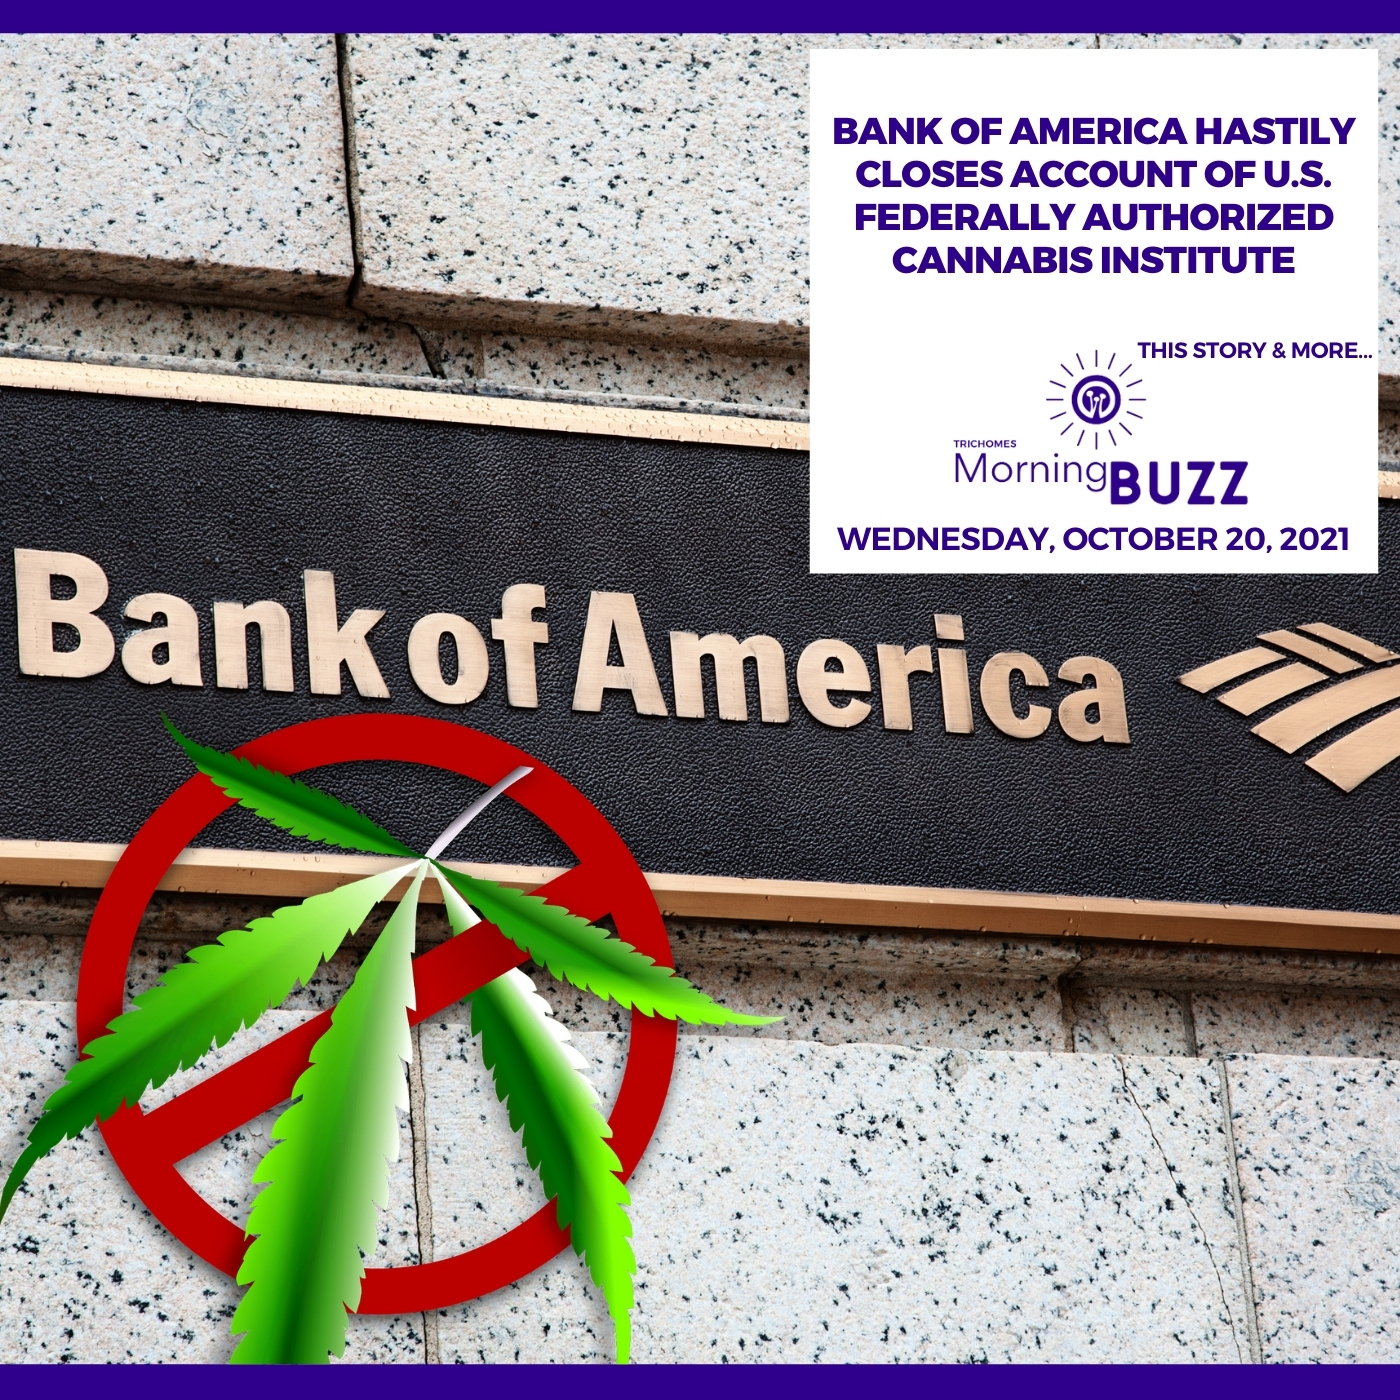 Bank Of America Hastily Closes Account Of U.S. Federally Authorized Cannabis Institute show art